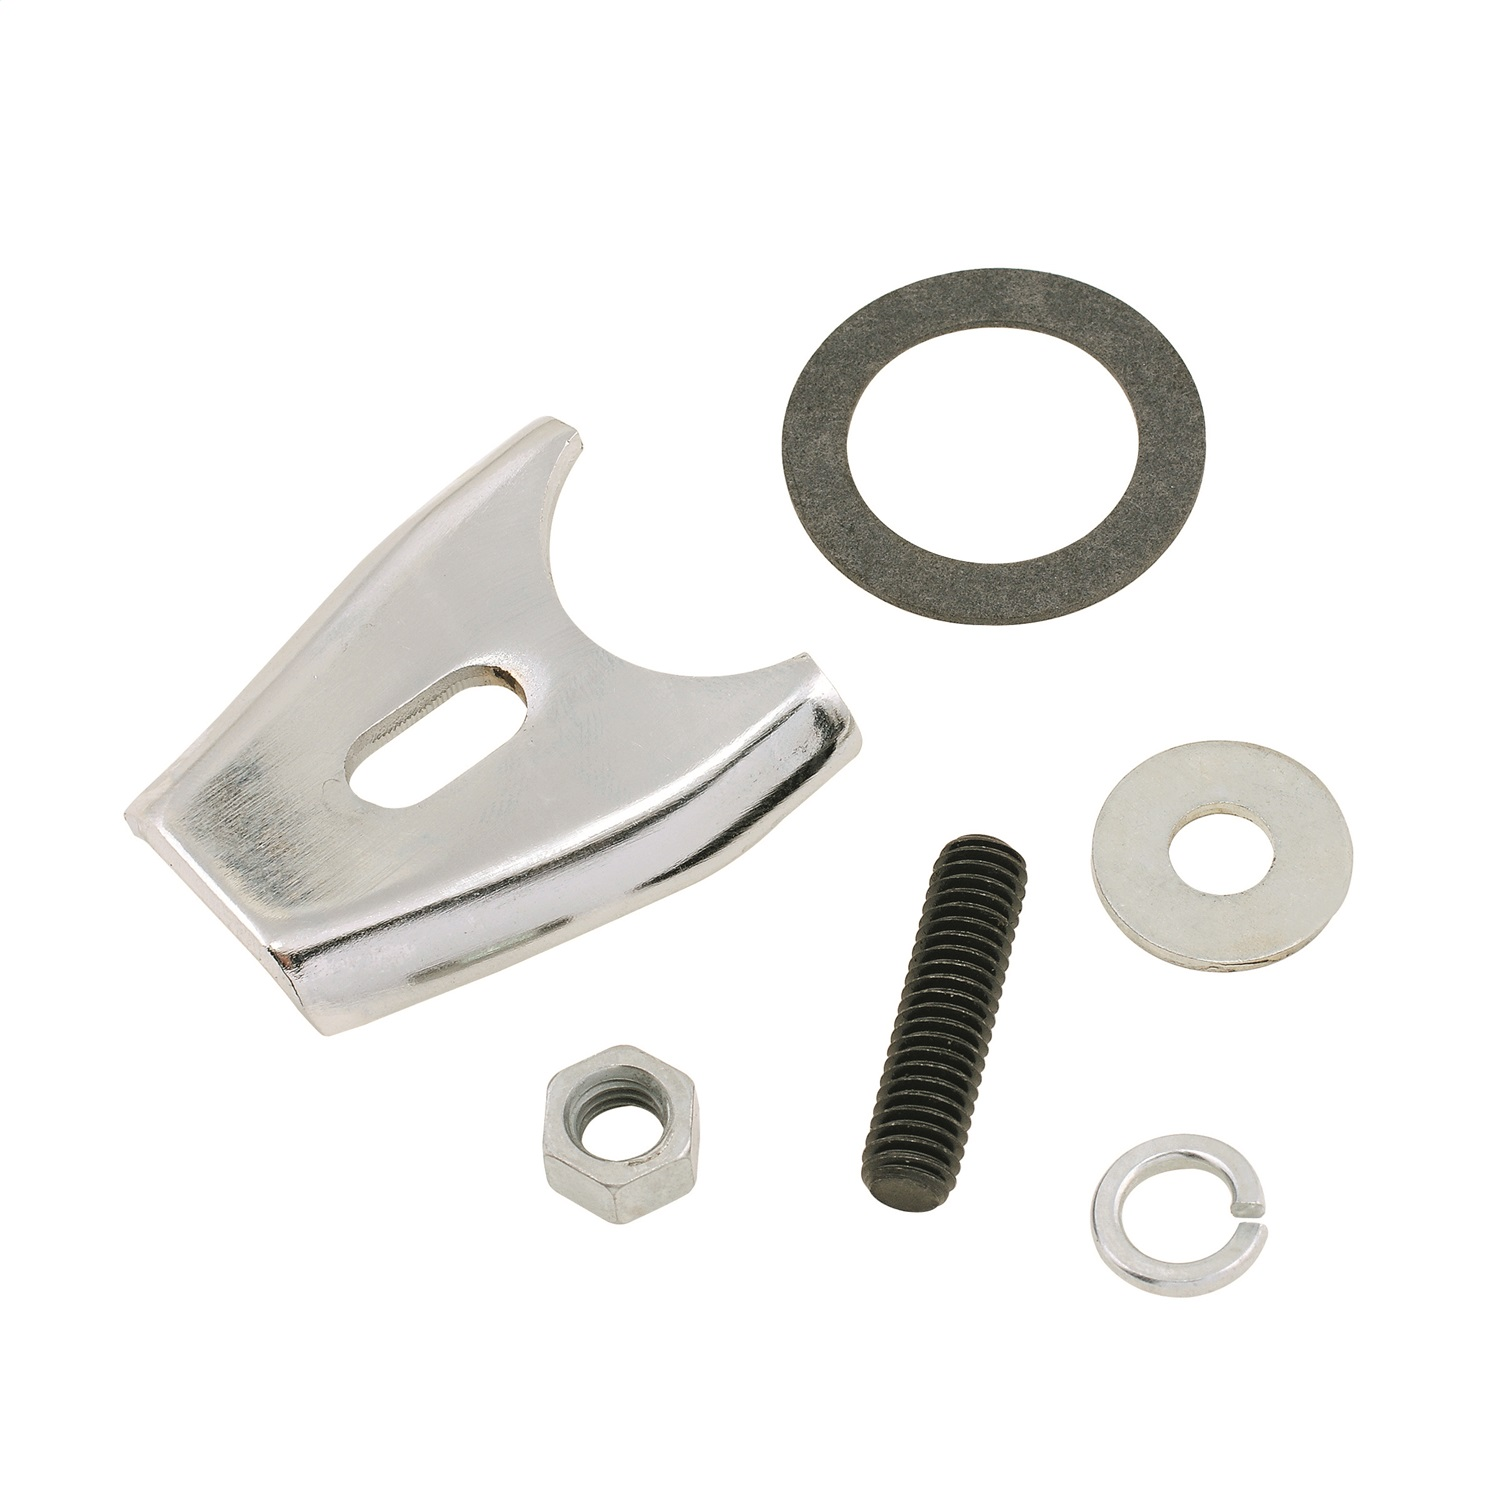 Mr. Gasket Distributor Clamp (6197)